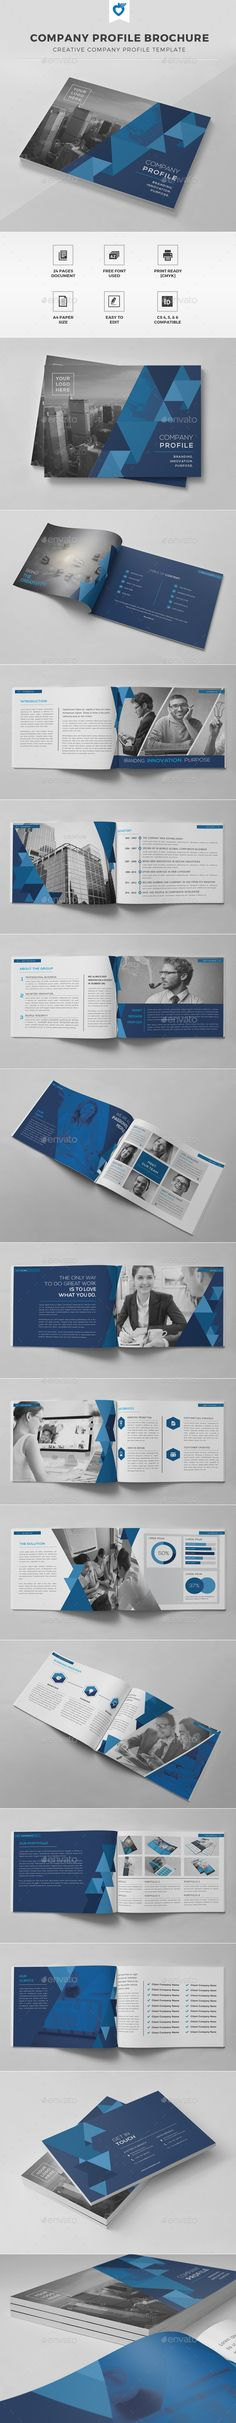 Company Profile Brochure Template #design Download: http://graphicriver.net/item/company-profile-brochure/11808076?ref=ksioks